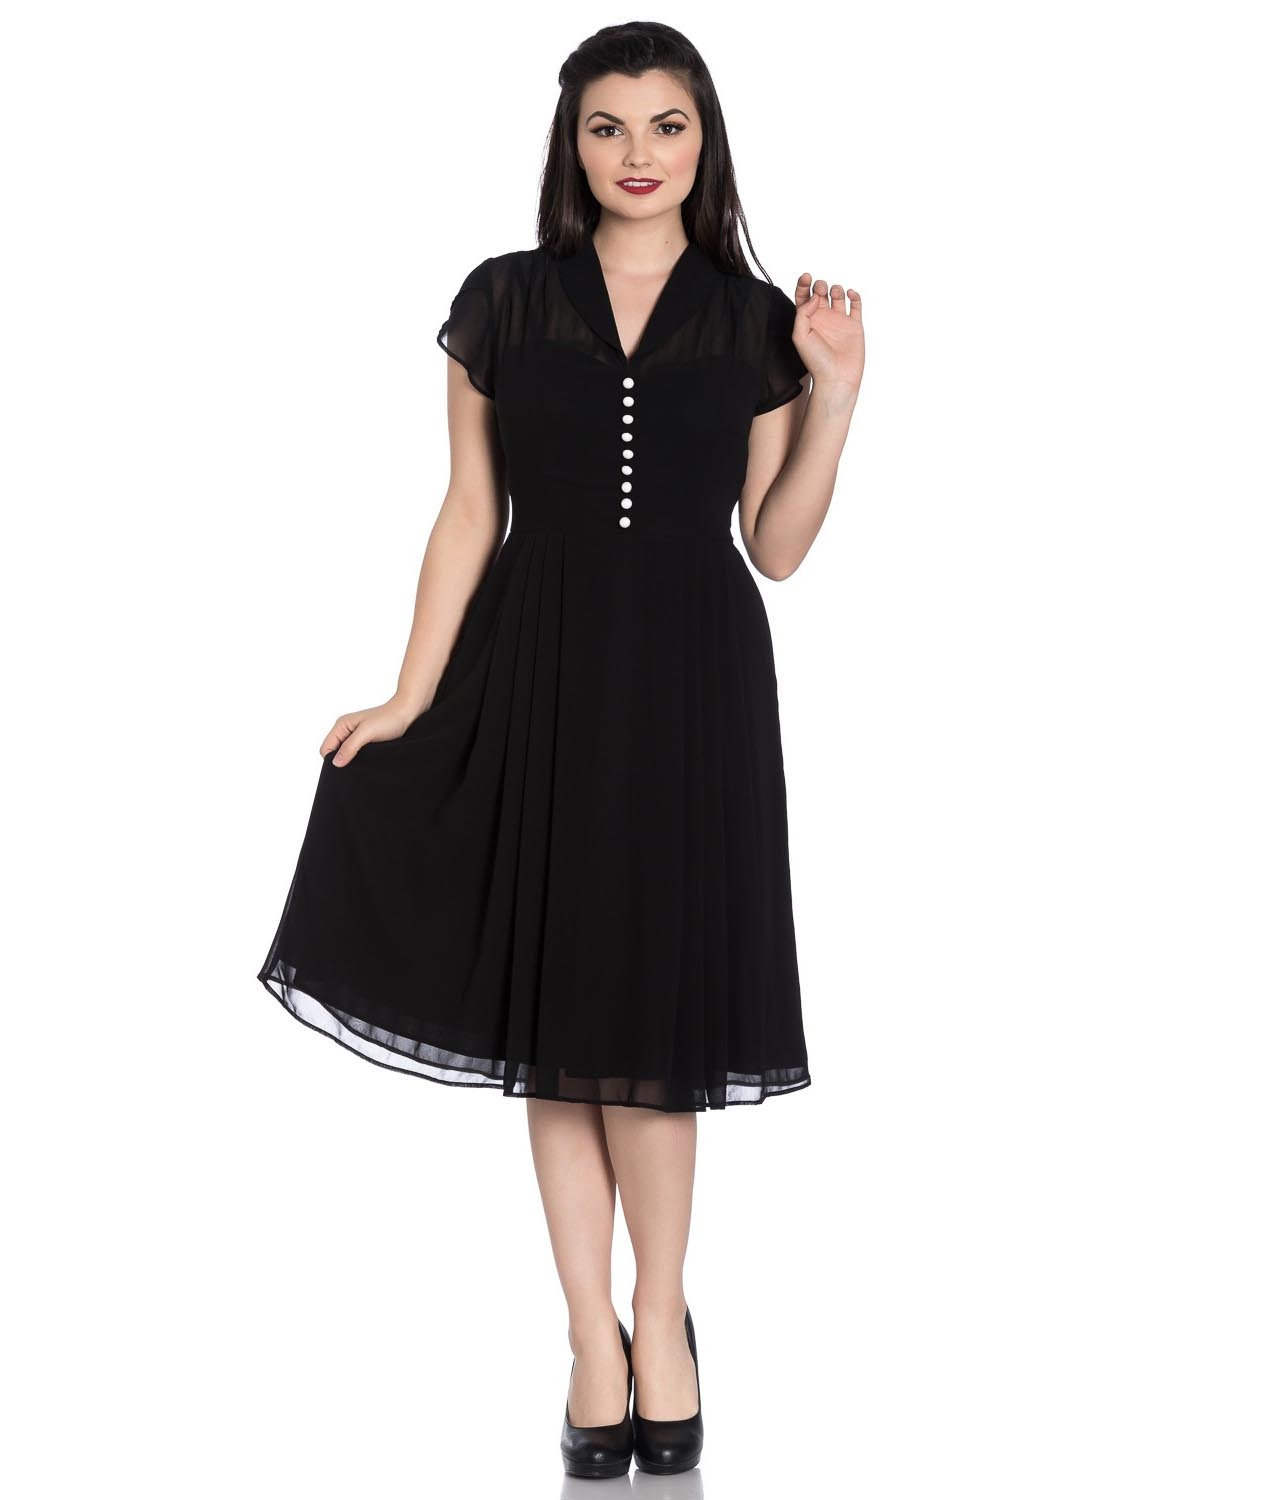 Hell-Bunny-40s-50s-Elegant-Pin-Up-Dress-PAIGE-Black-Chiffon-All-Sizes thumbnail 15